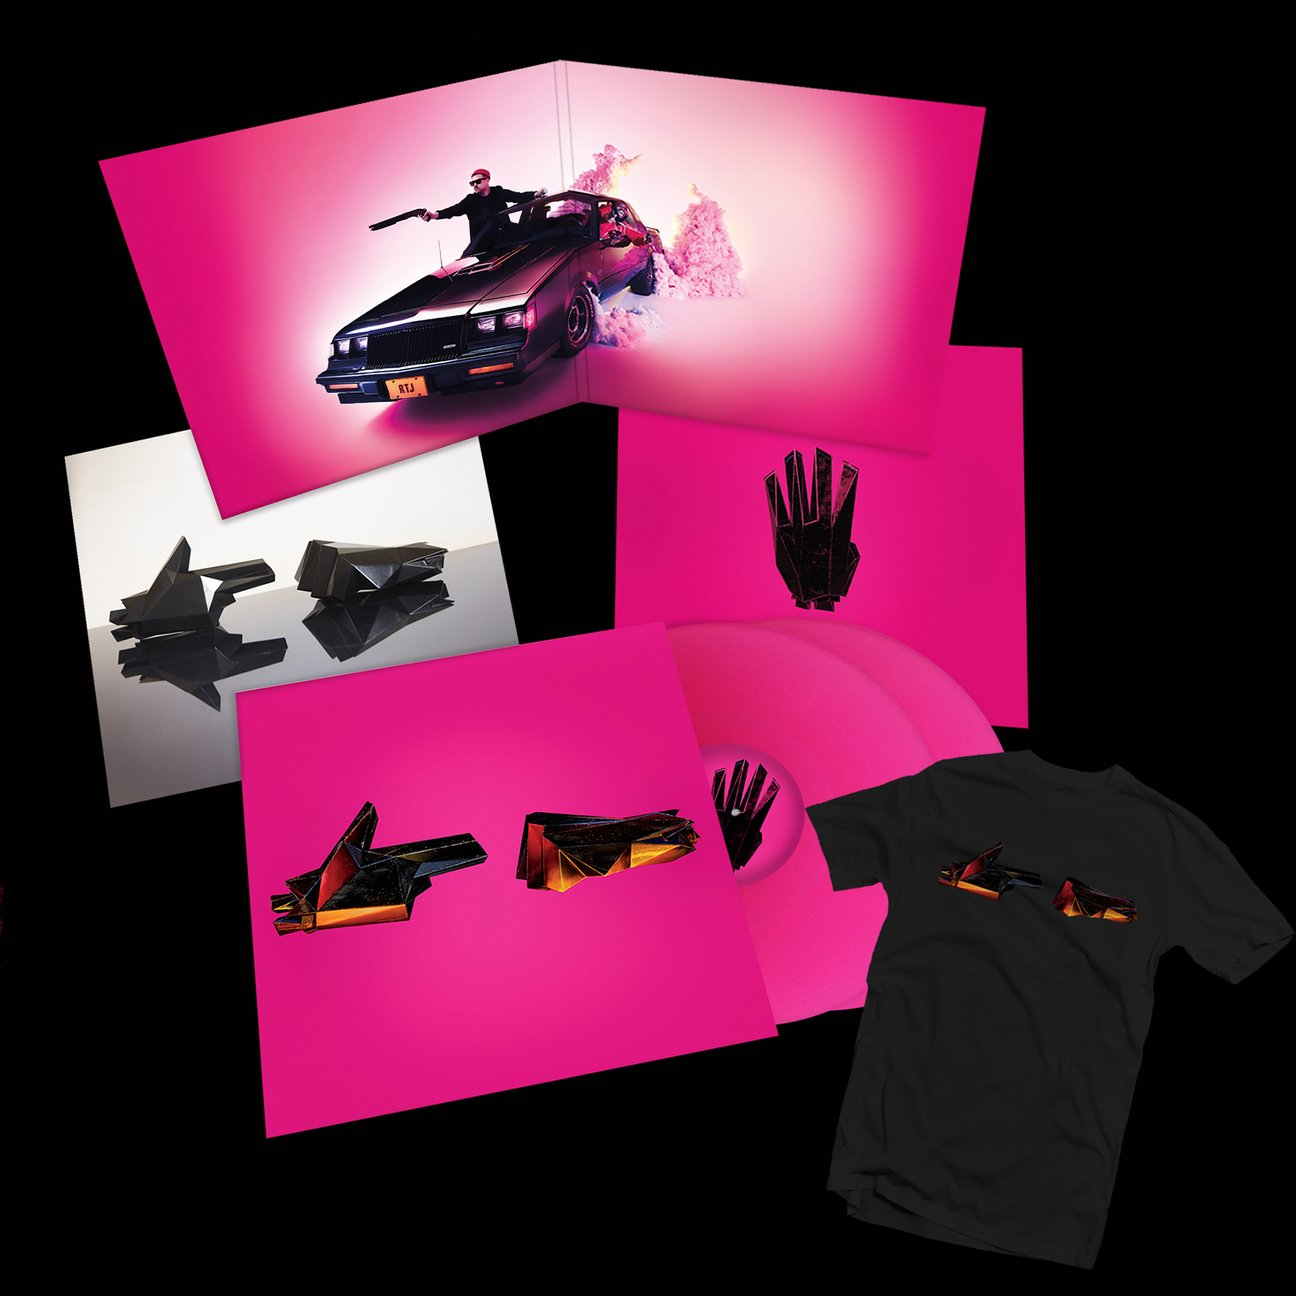 RTJ4: 2xLP BUNDLE (BLACK T-SHIRT) - PREORDER